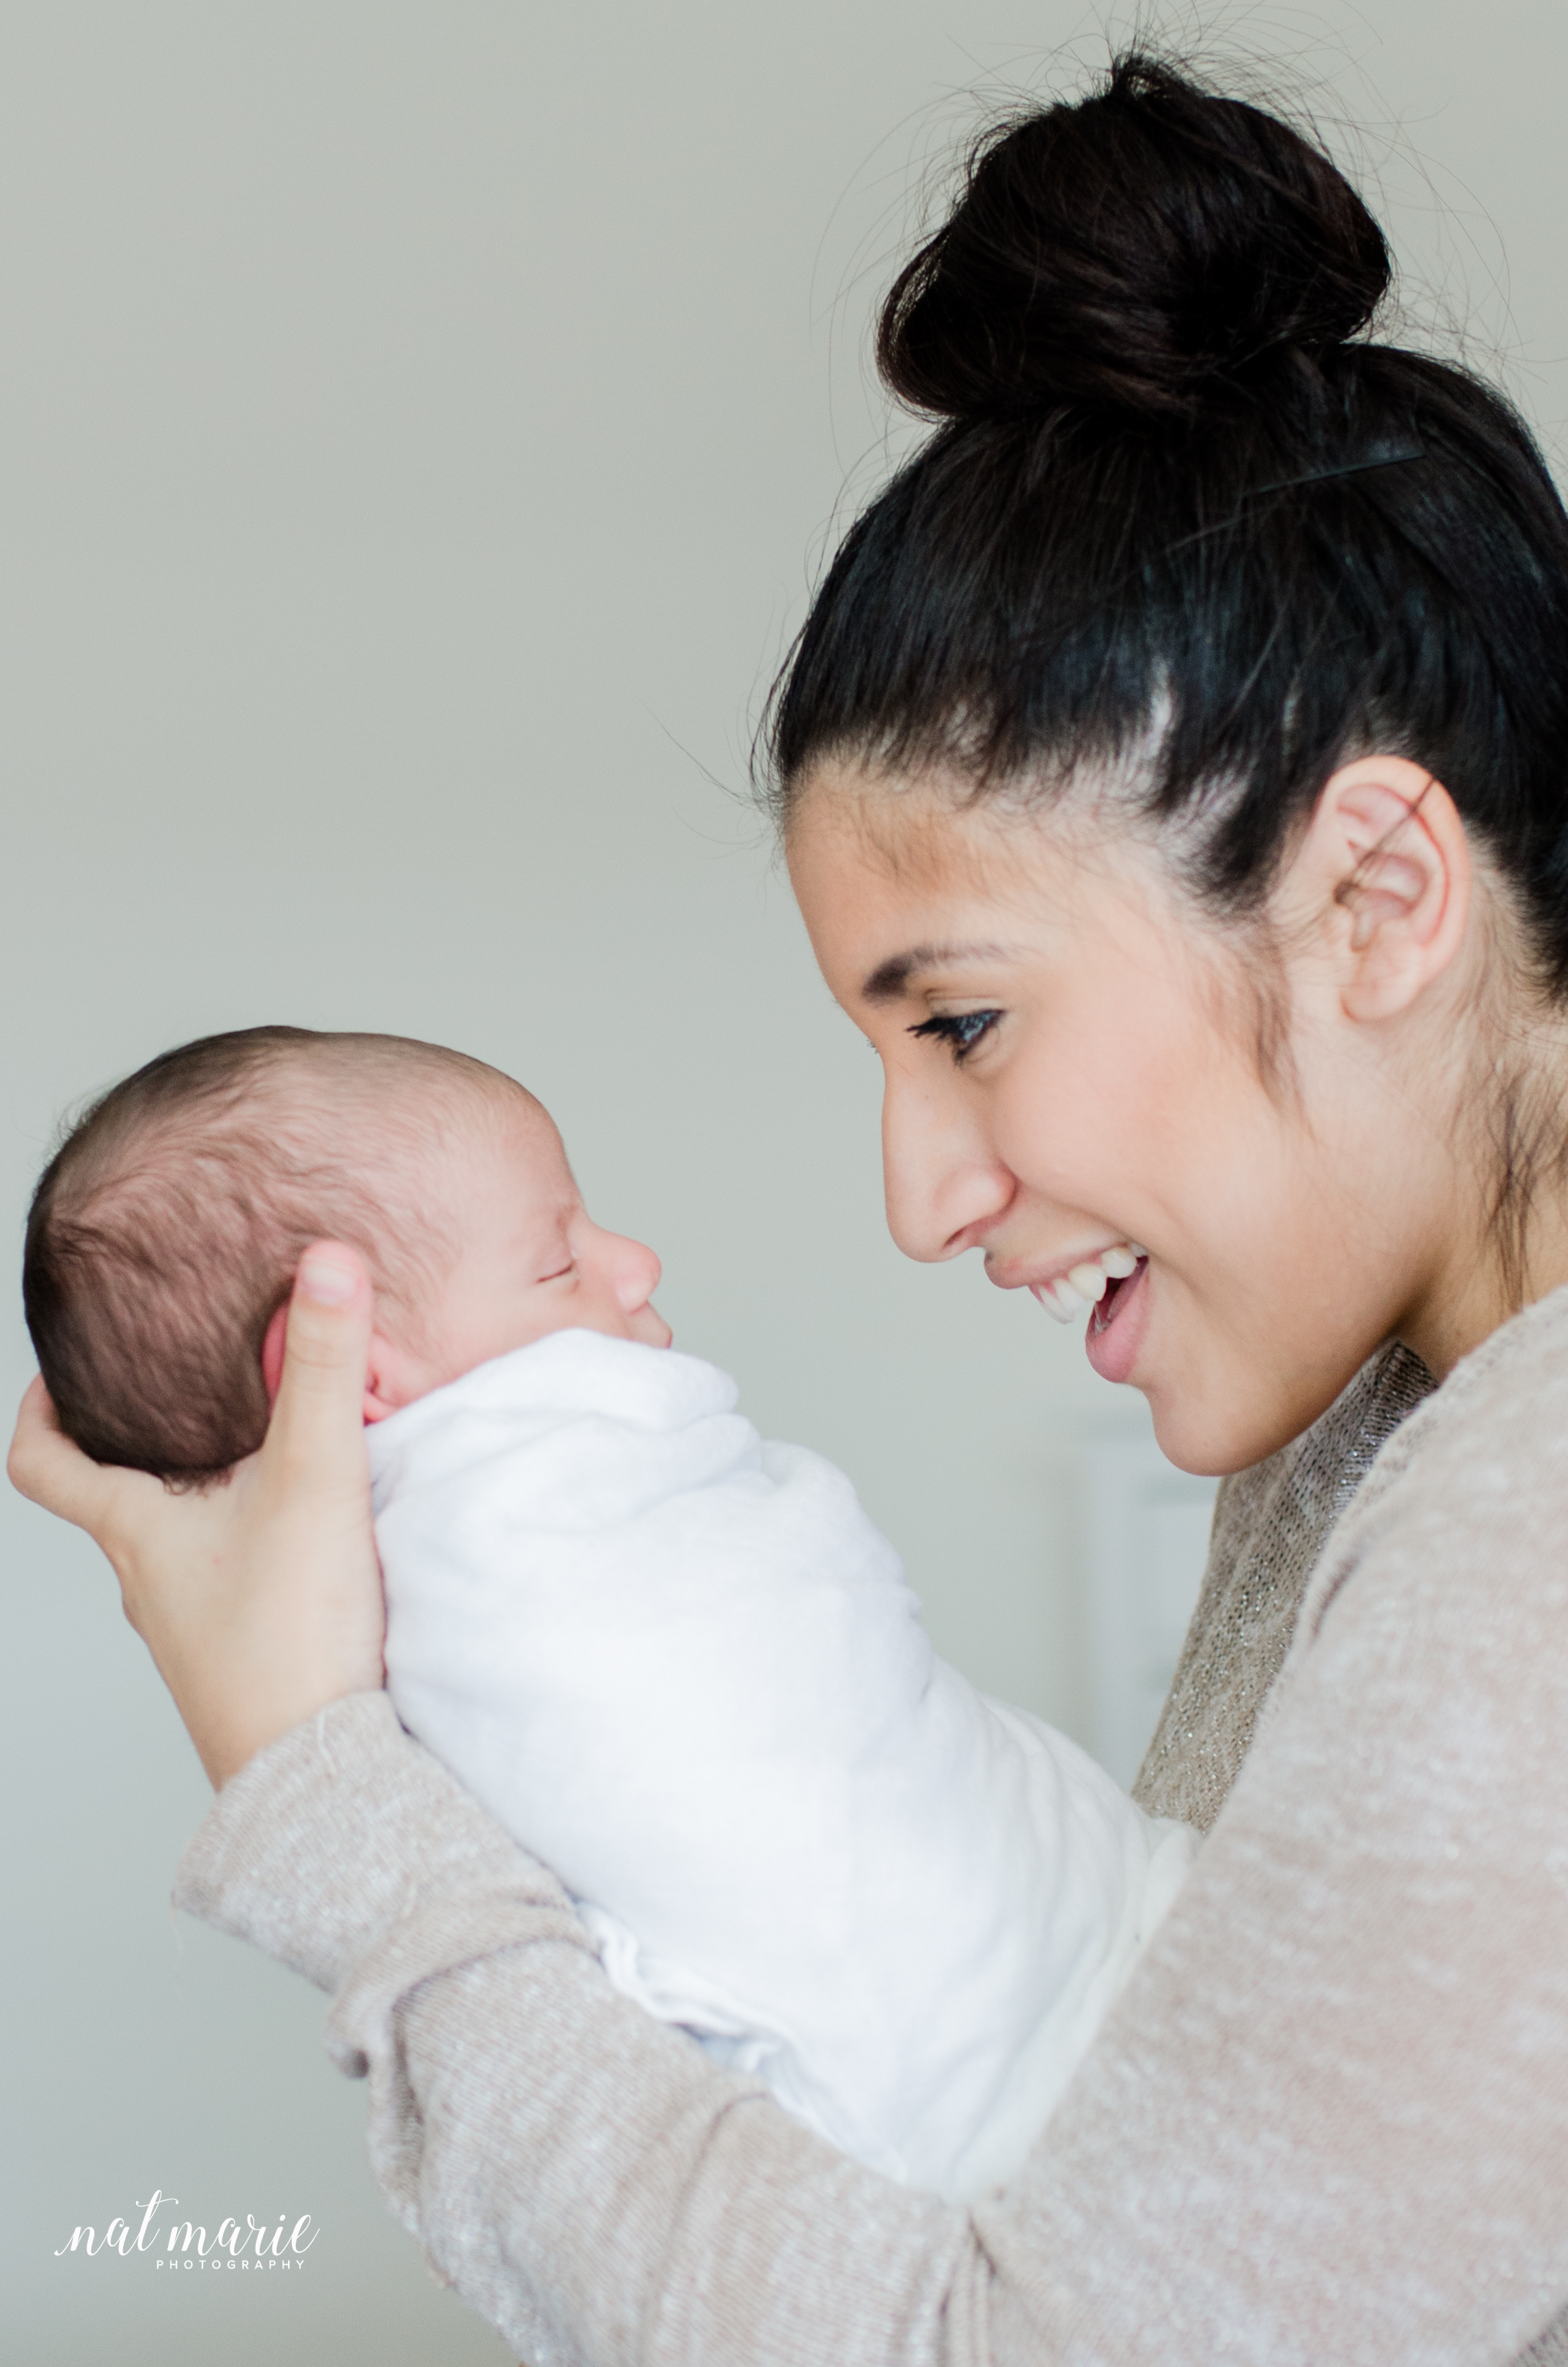 Chandler, AZ In-home Lifestyle Newborn Photography - Light & Airy Photography